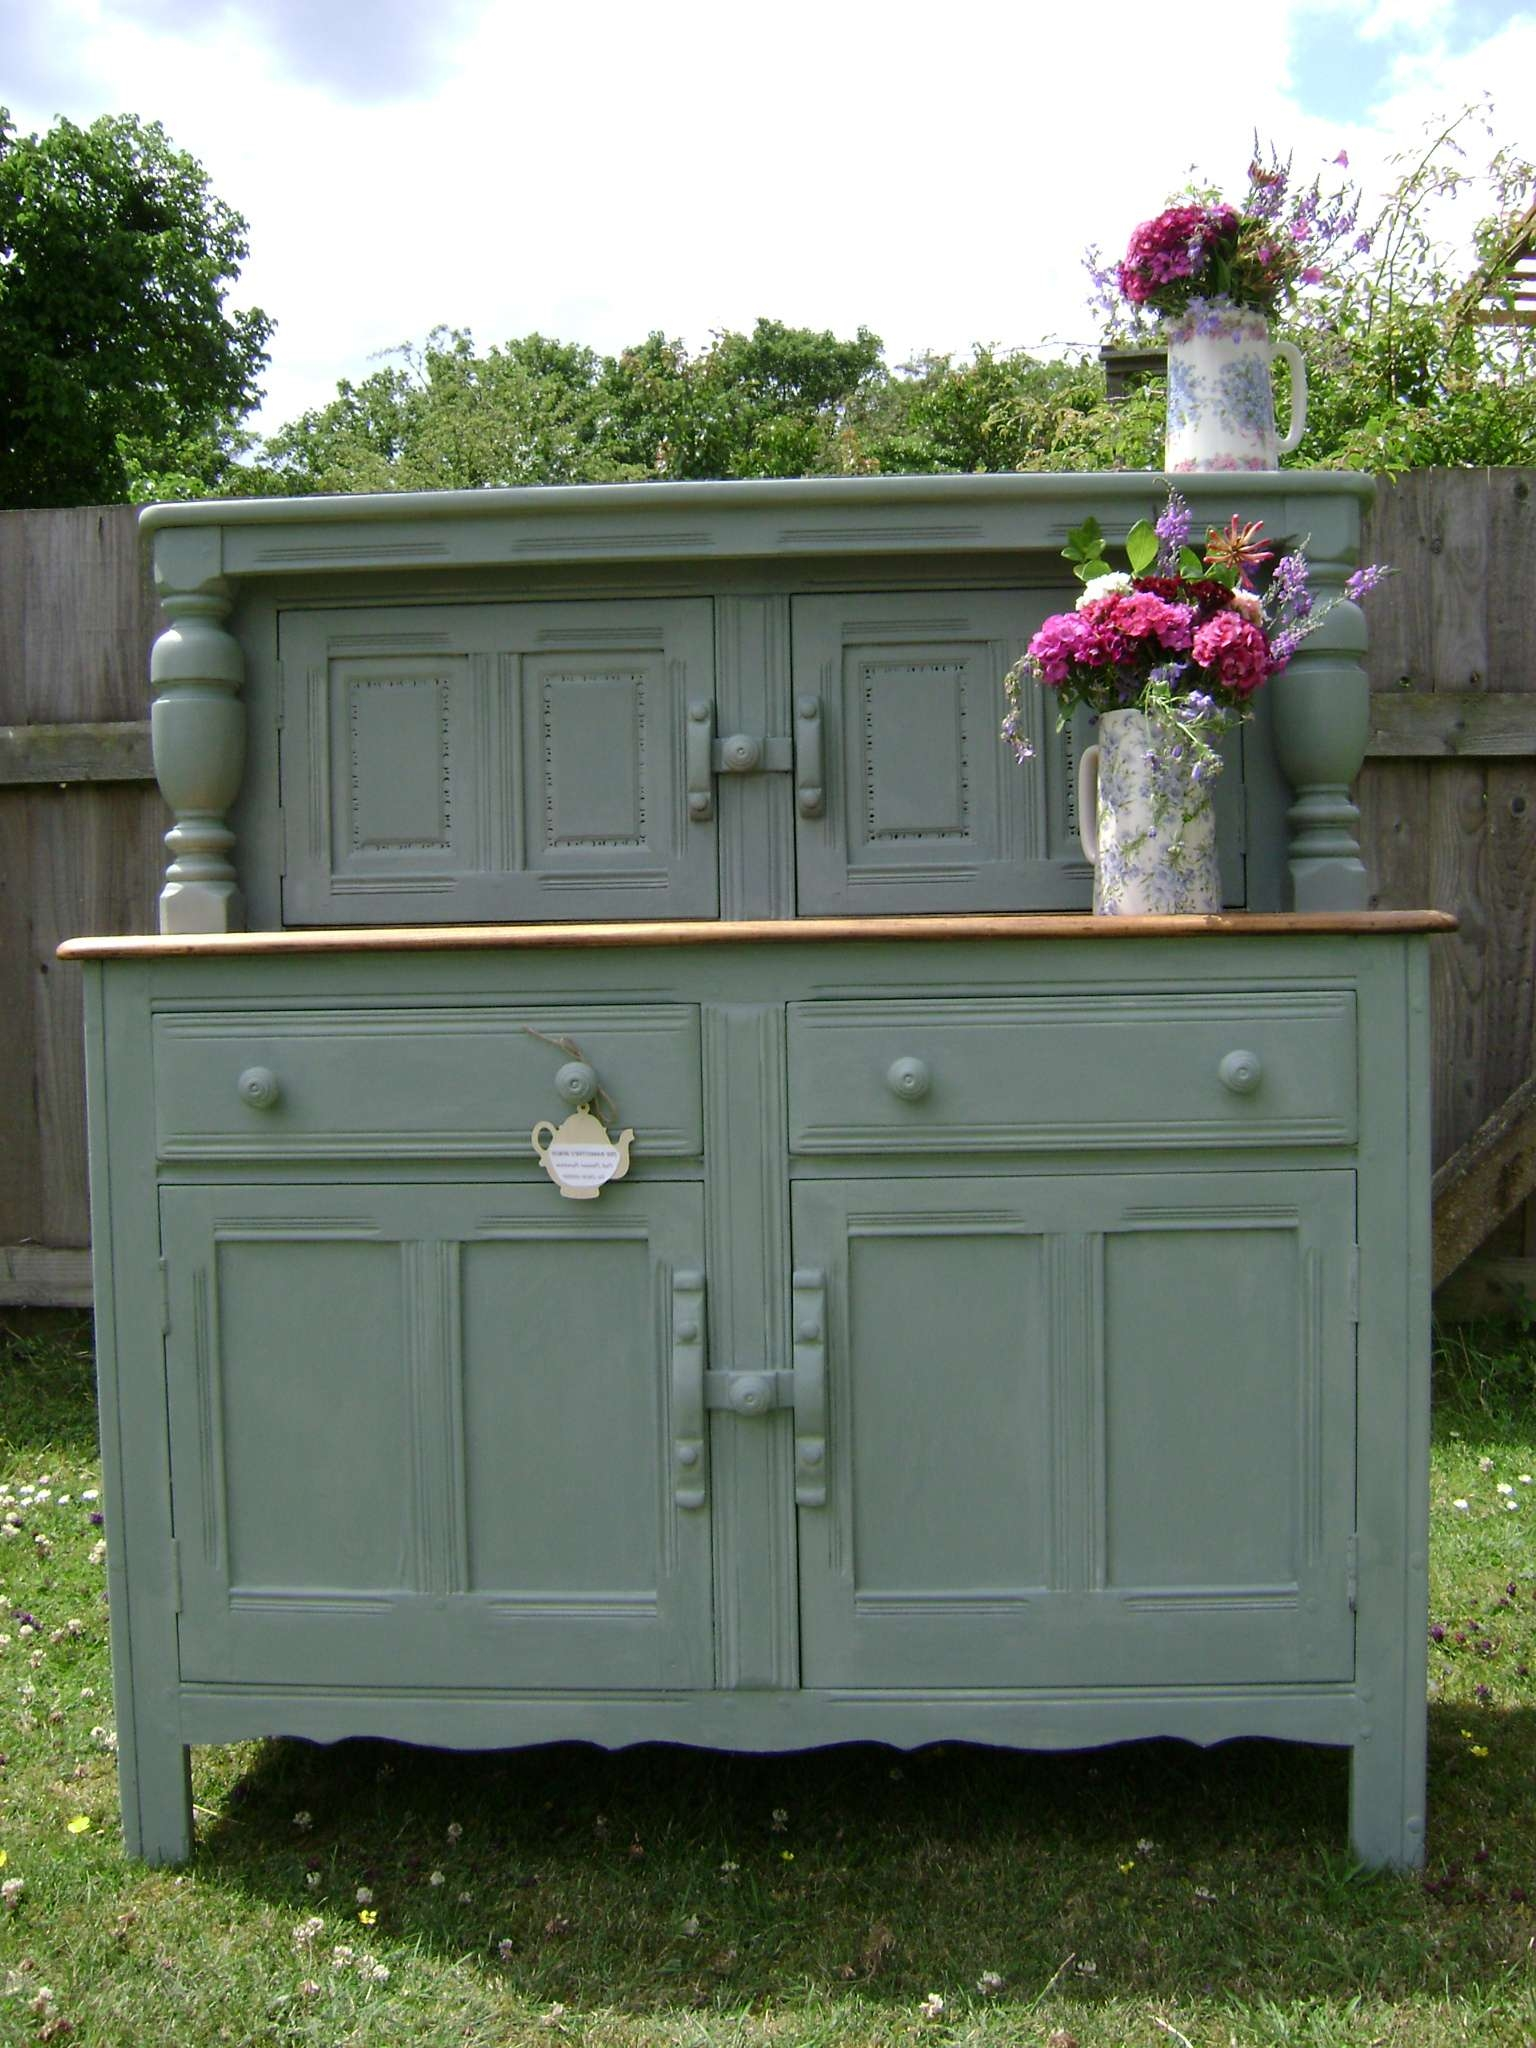 June | 2011 | The Barrister's Horse Intended For Annie Sloan Painted Sideboards (View 9 of 20)